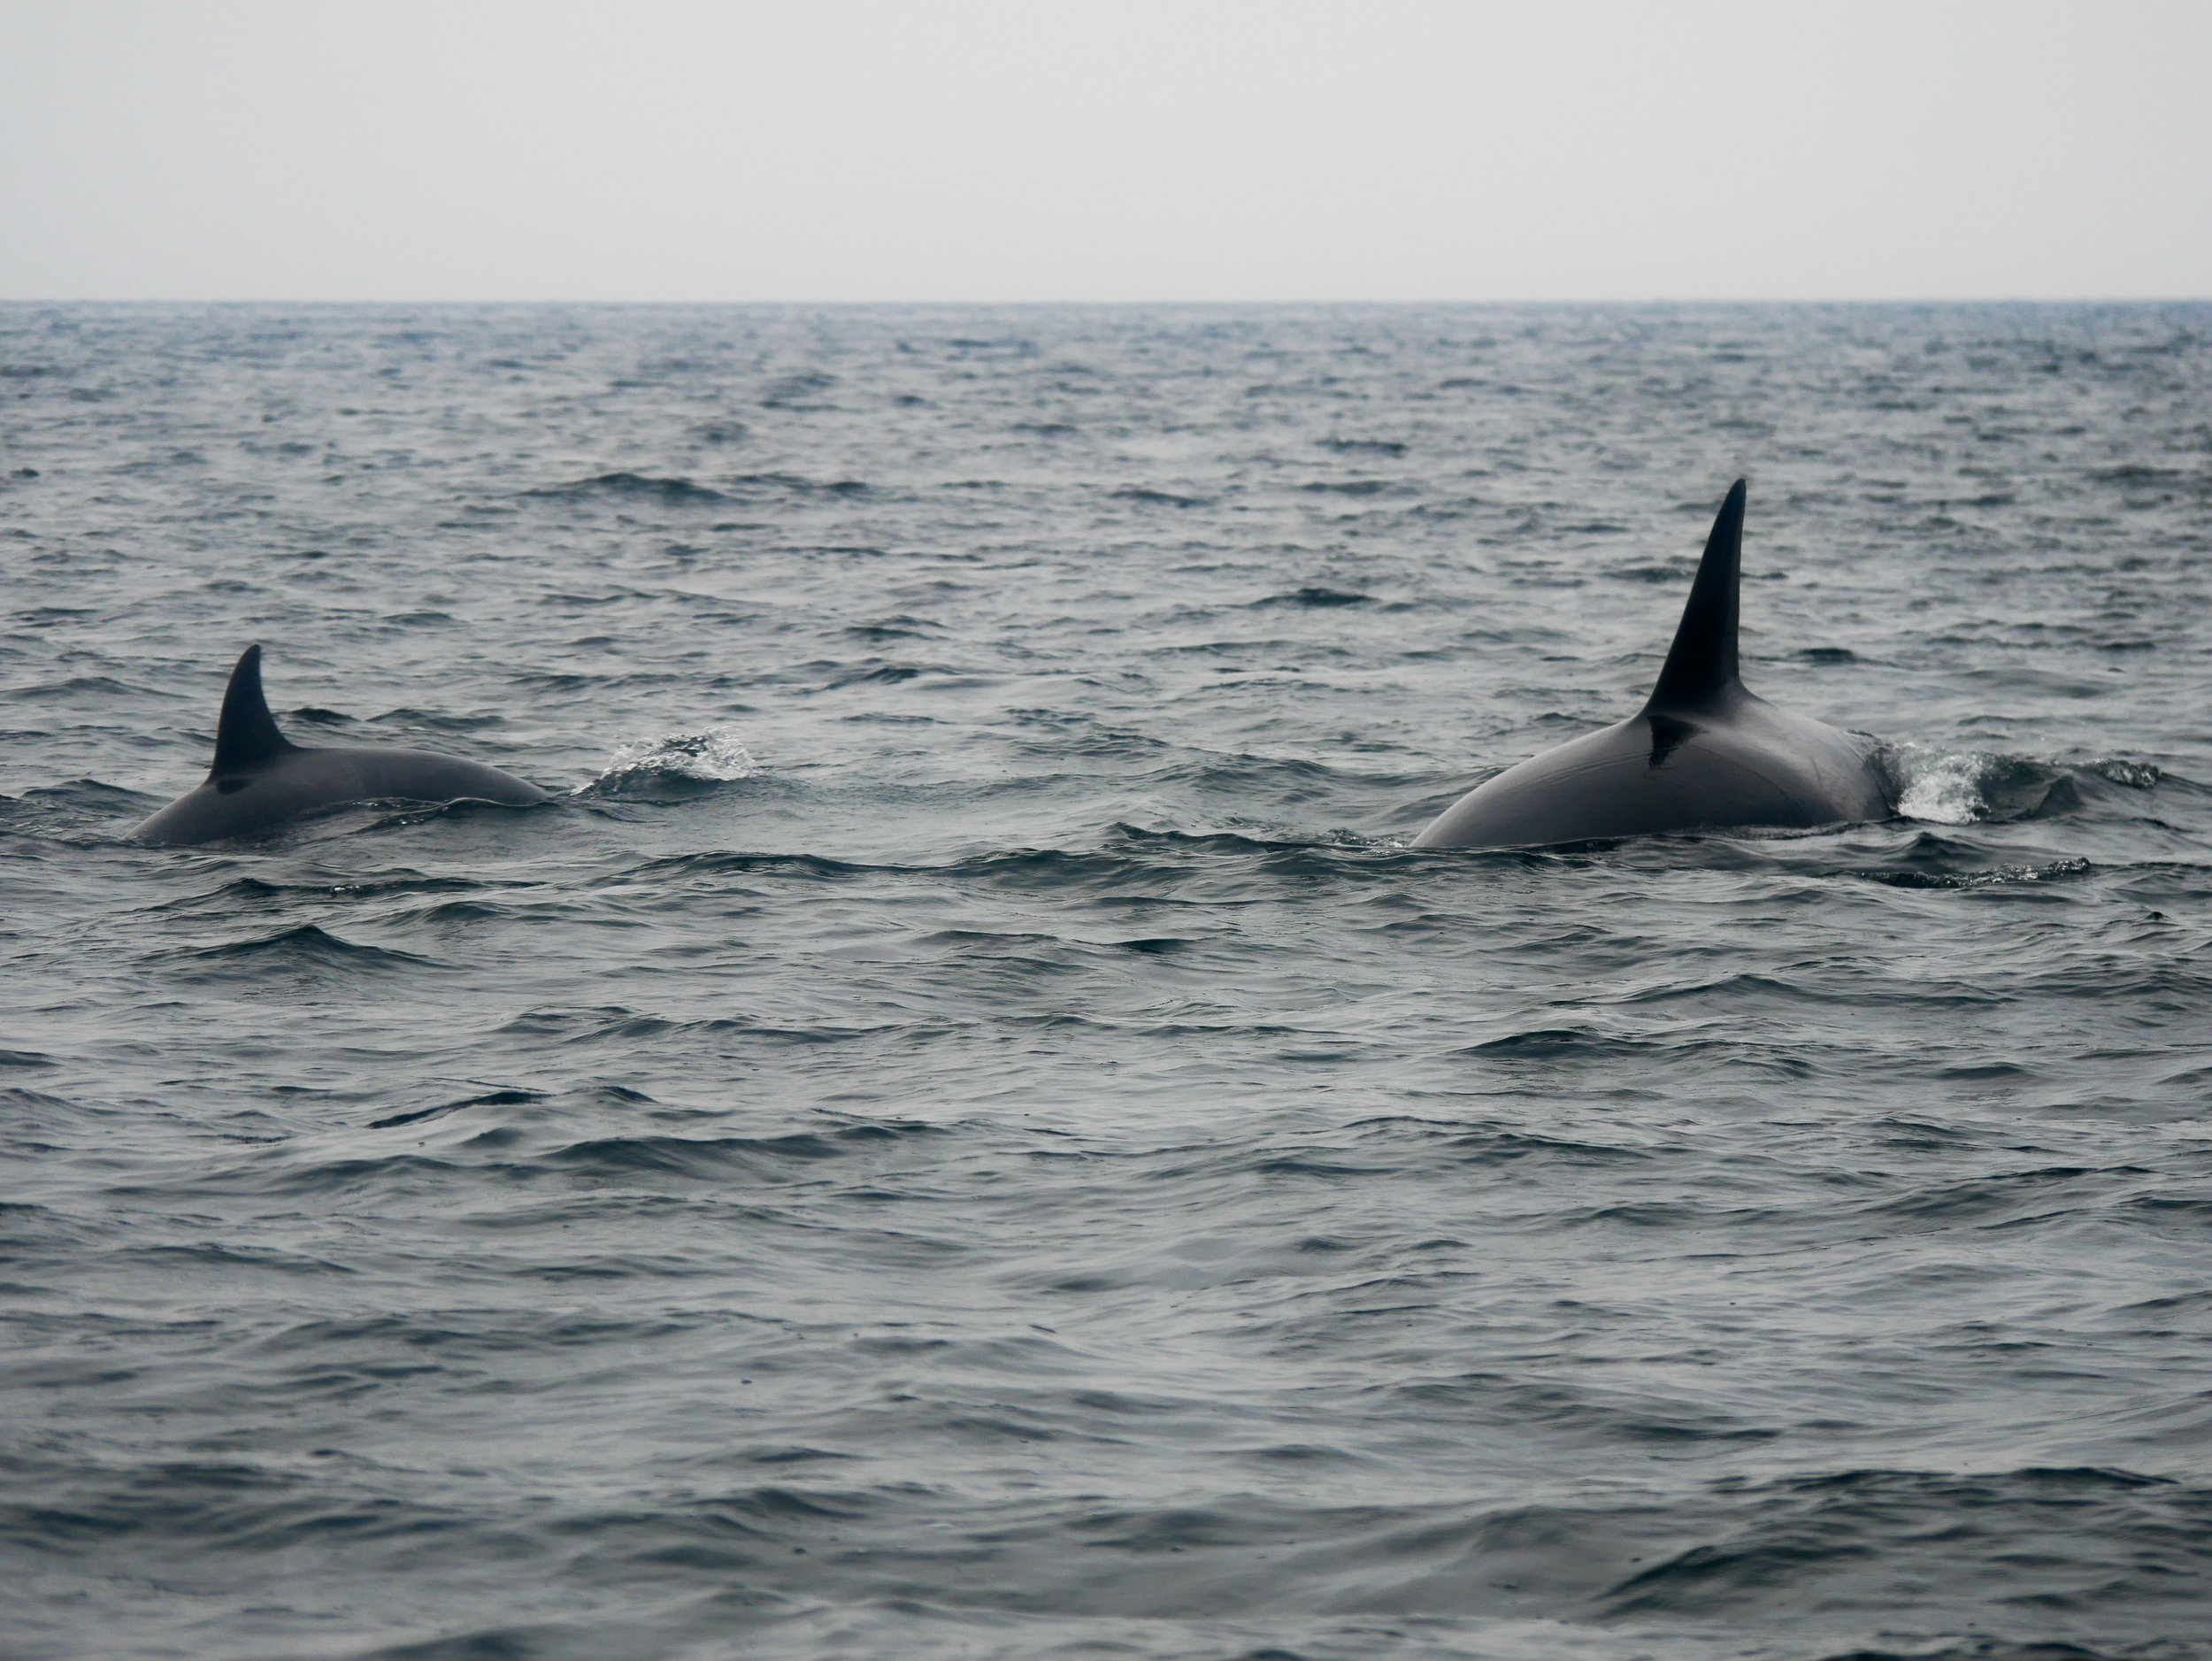 This angle really shows you size difference between a calf and a juvenile orca. Photo by Rodrigo Menezes - 3:30 tour.